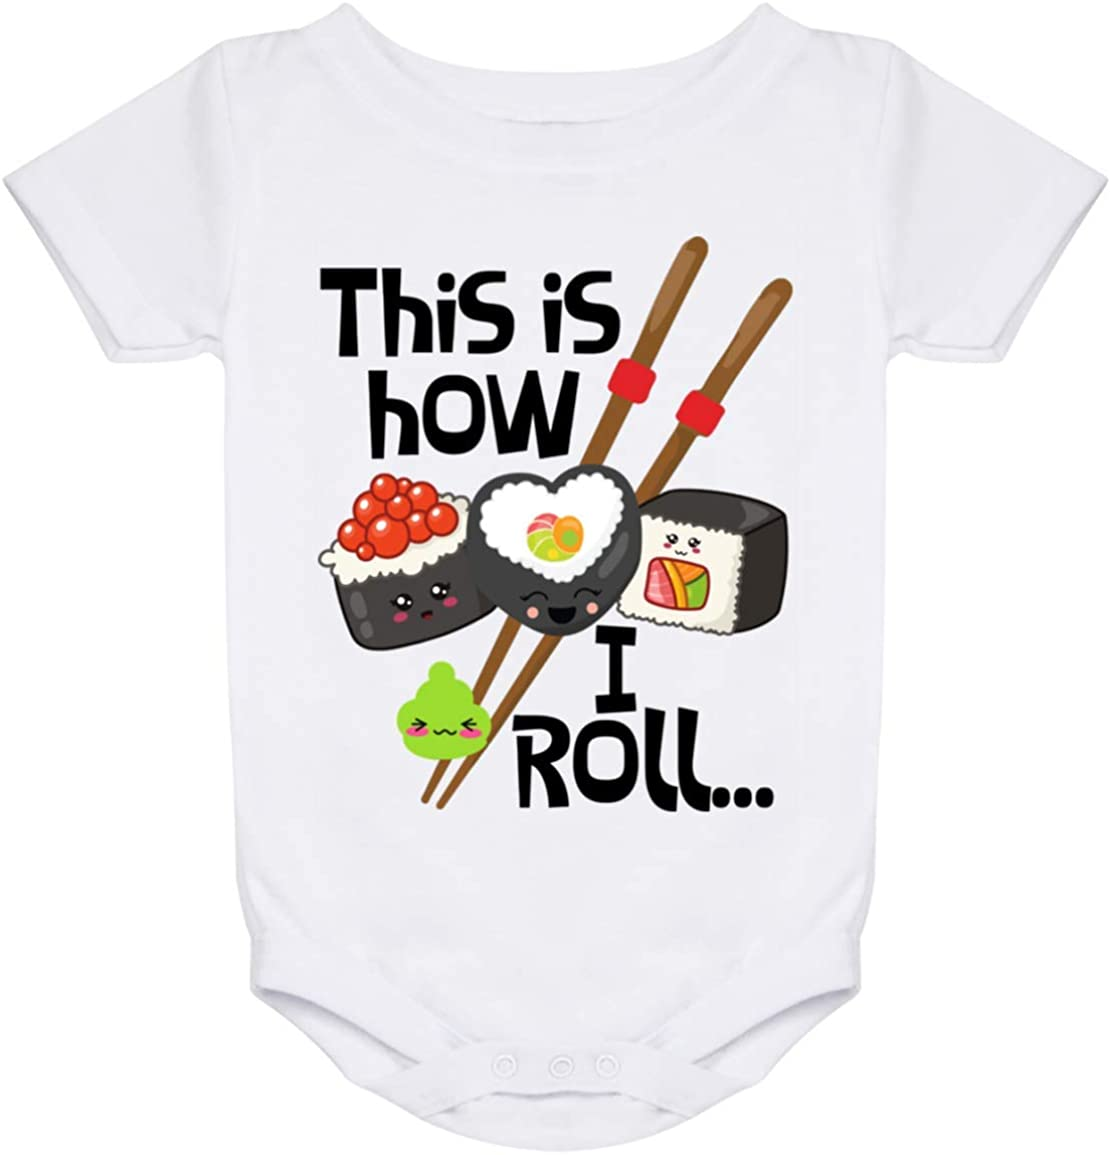 DST Apparel Co This is How I Roll Baby Bodysuit, Sushi Lover Pregnancy Gift, Japanese Asian Food Infant Outfit